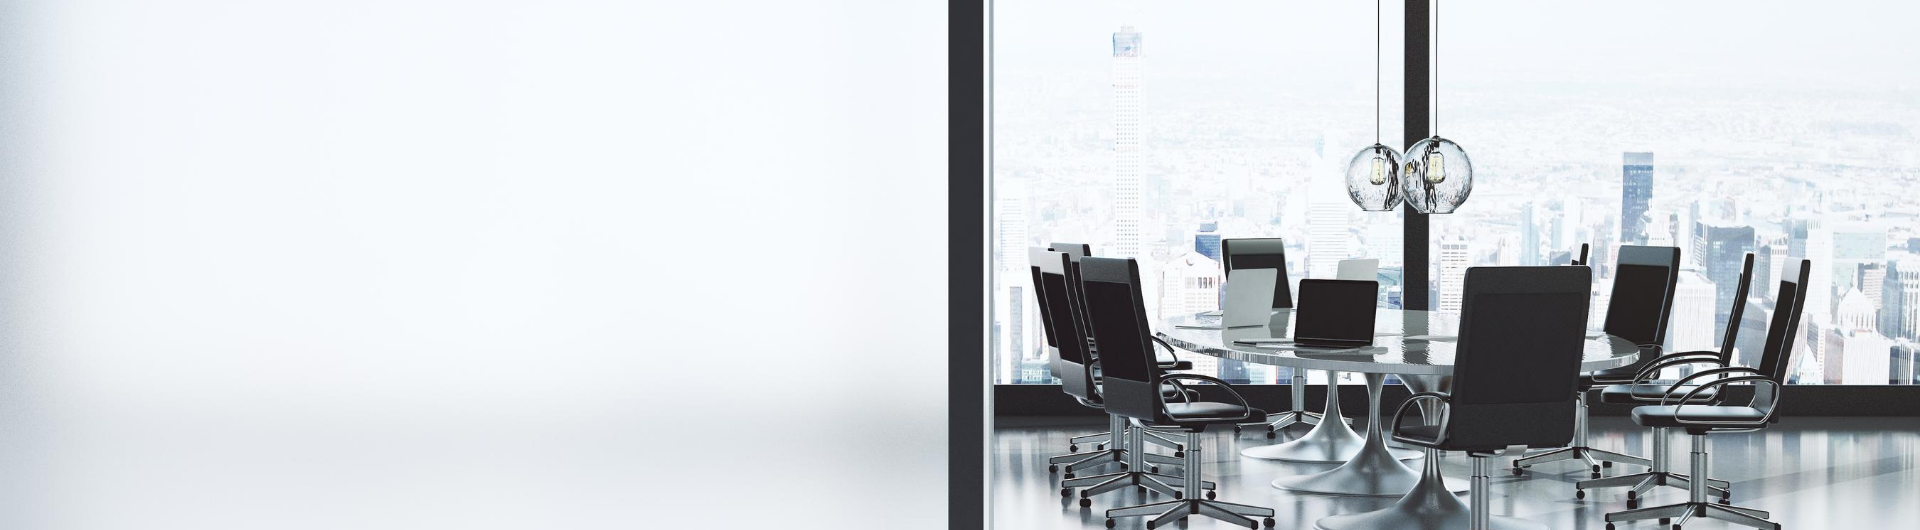 BenQ display solution for hybrid and remote working in the modern workplace